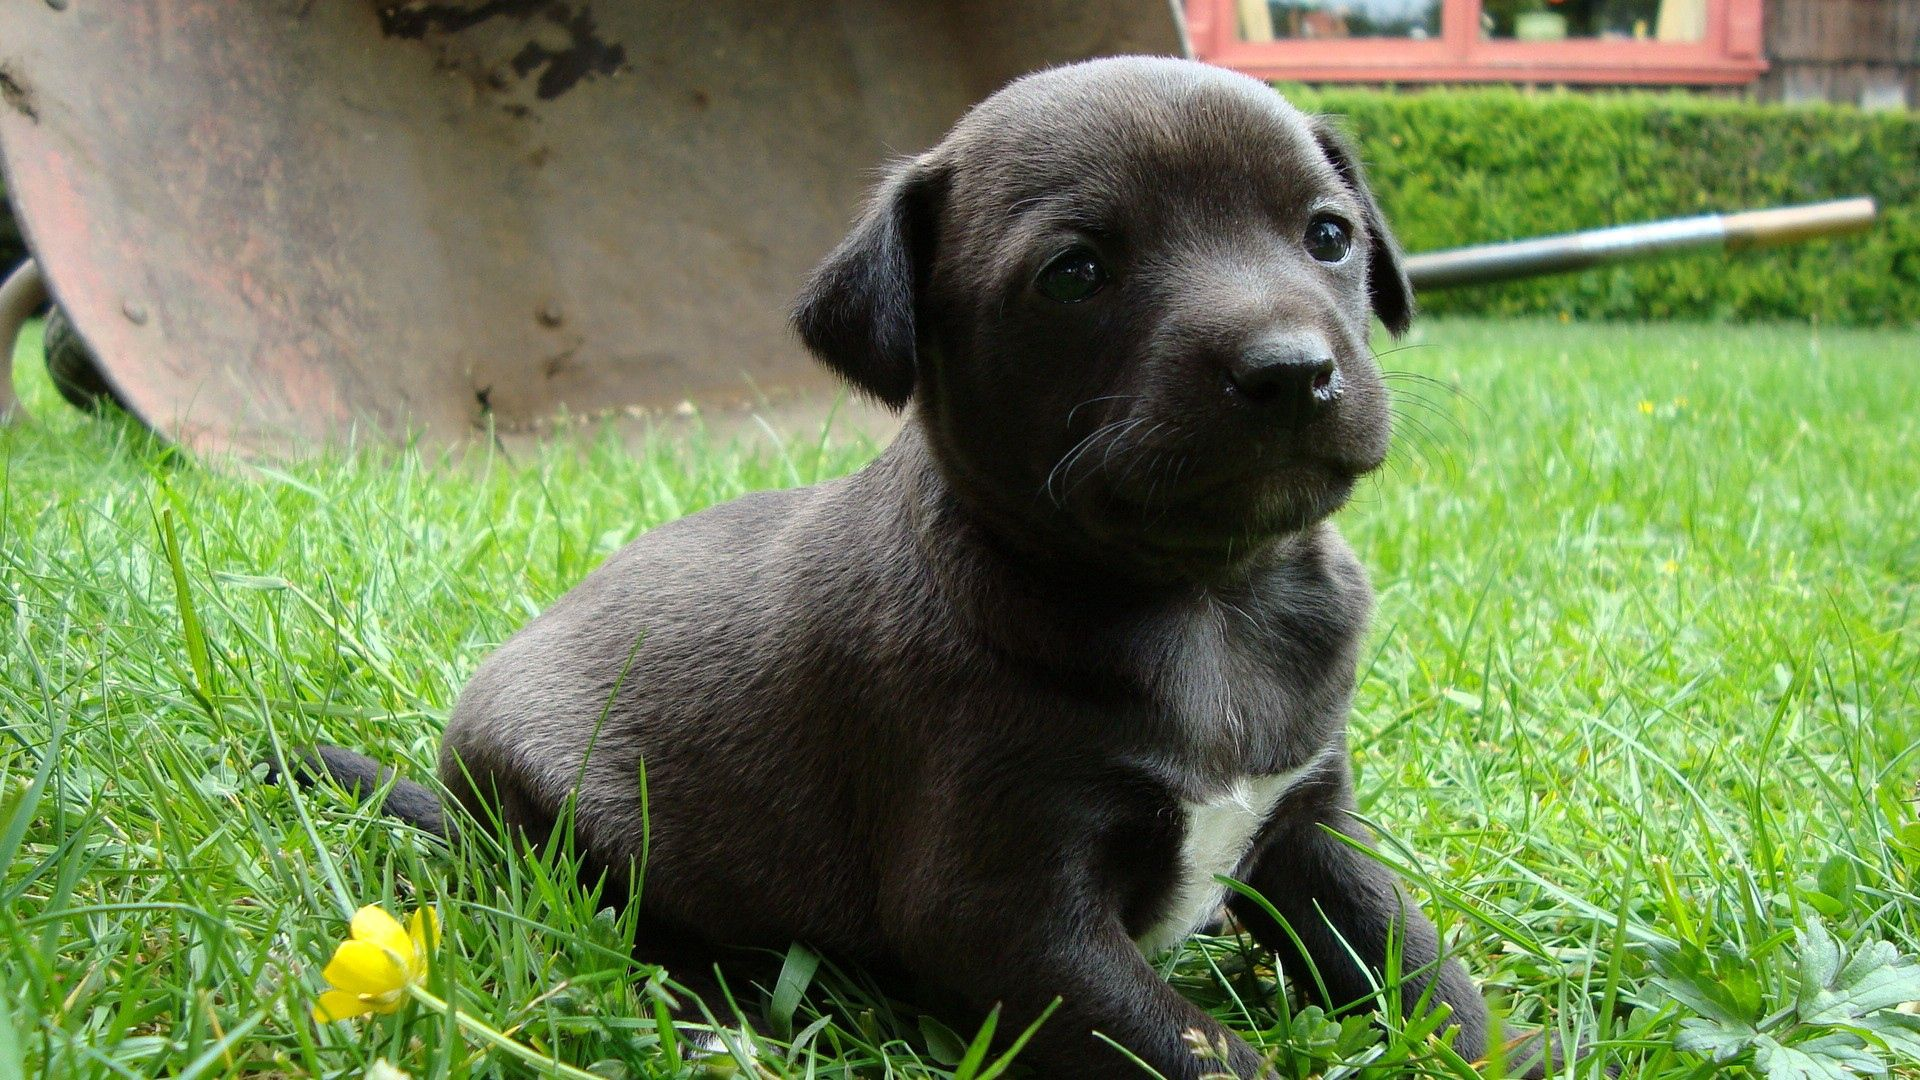 104645 download wallpaper Animals, Puppy, Grass, Sit, Dog screensavers and pictures for free